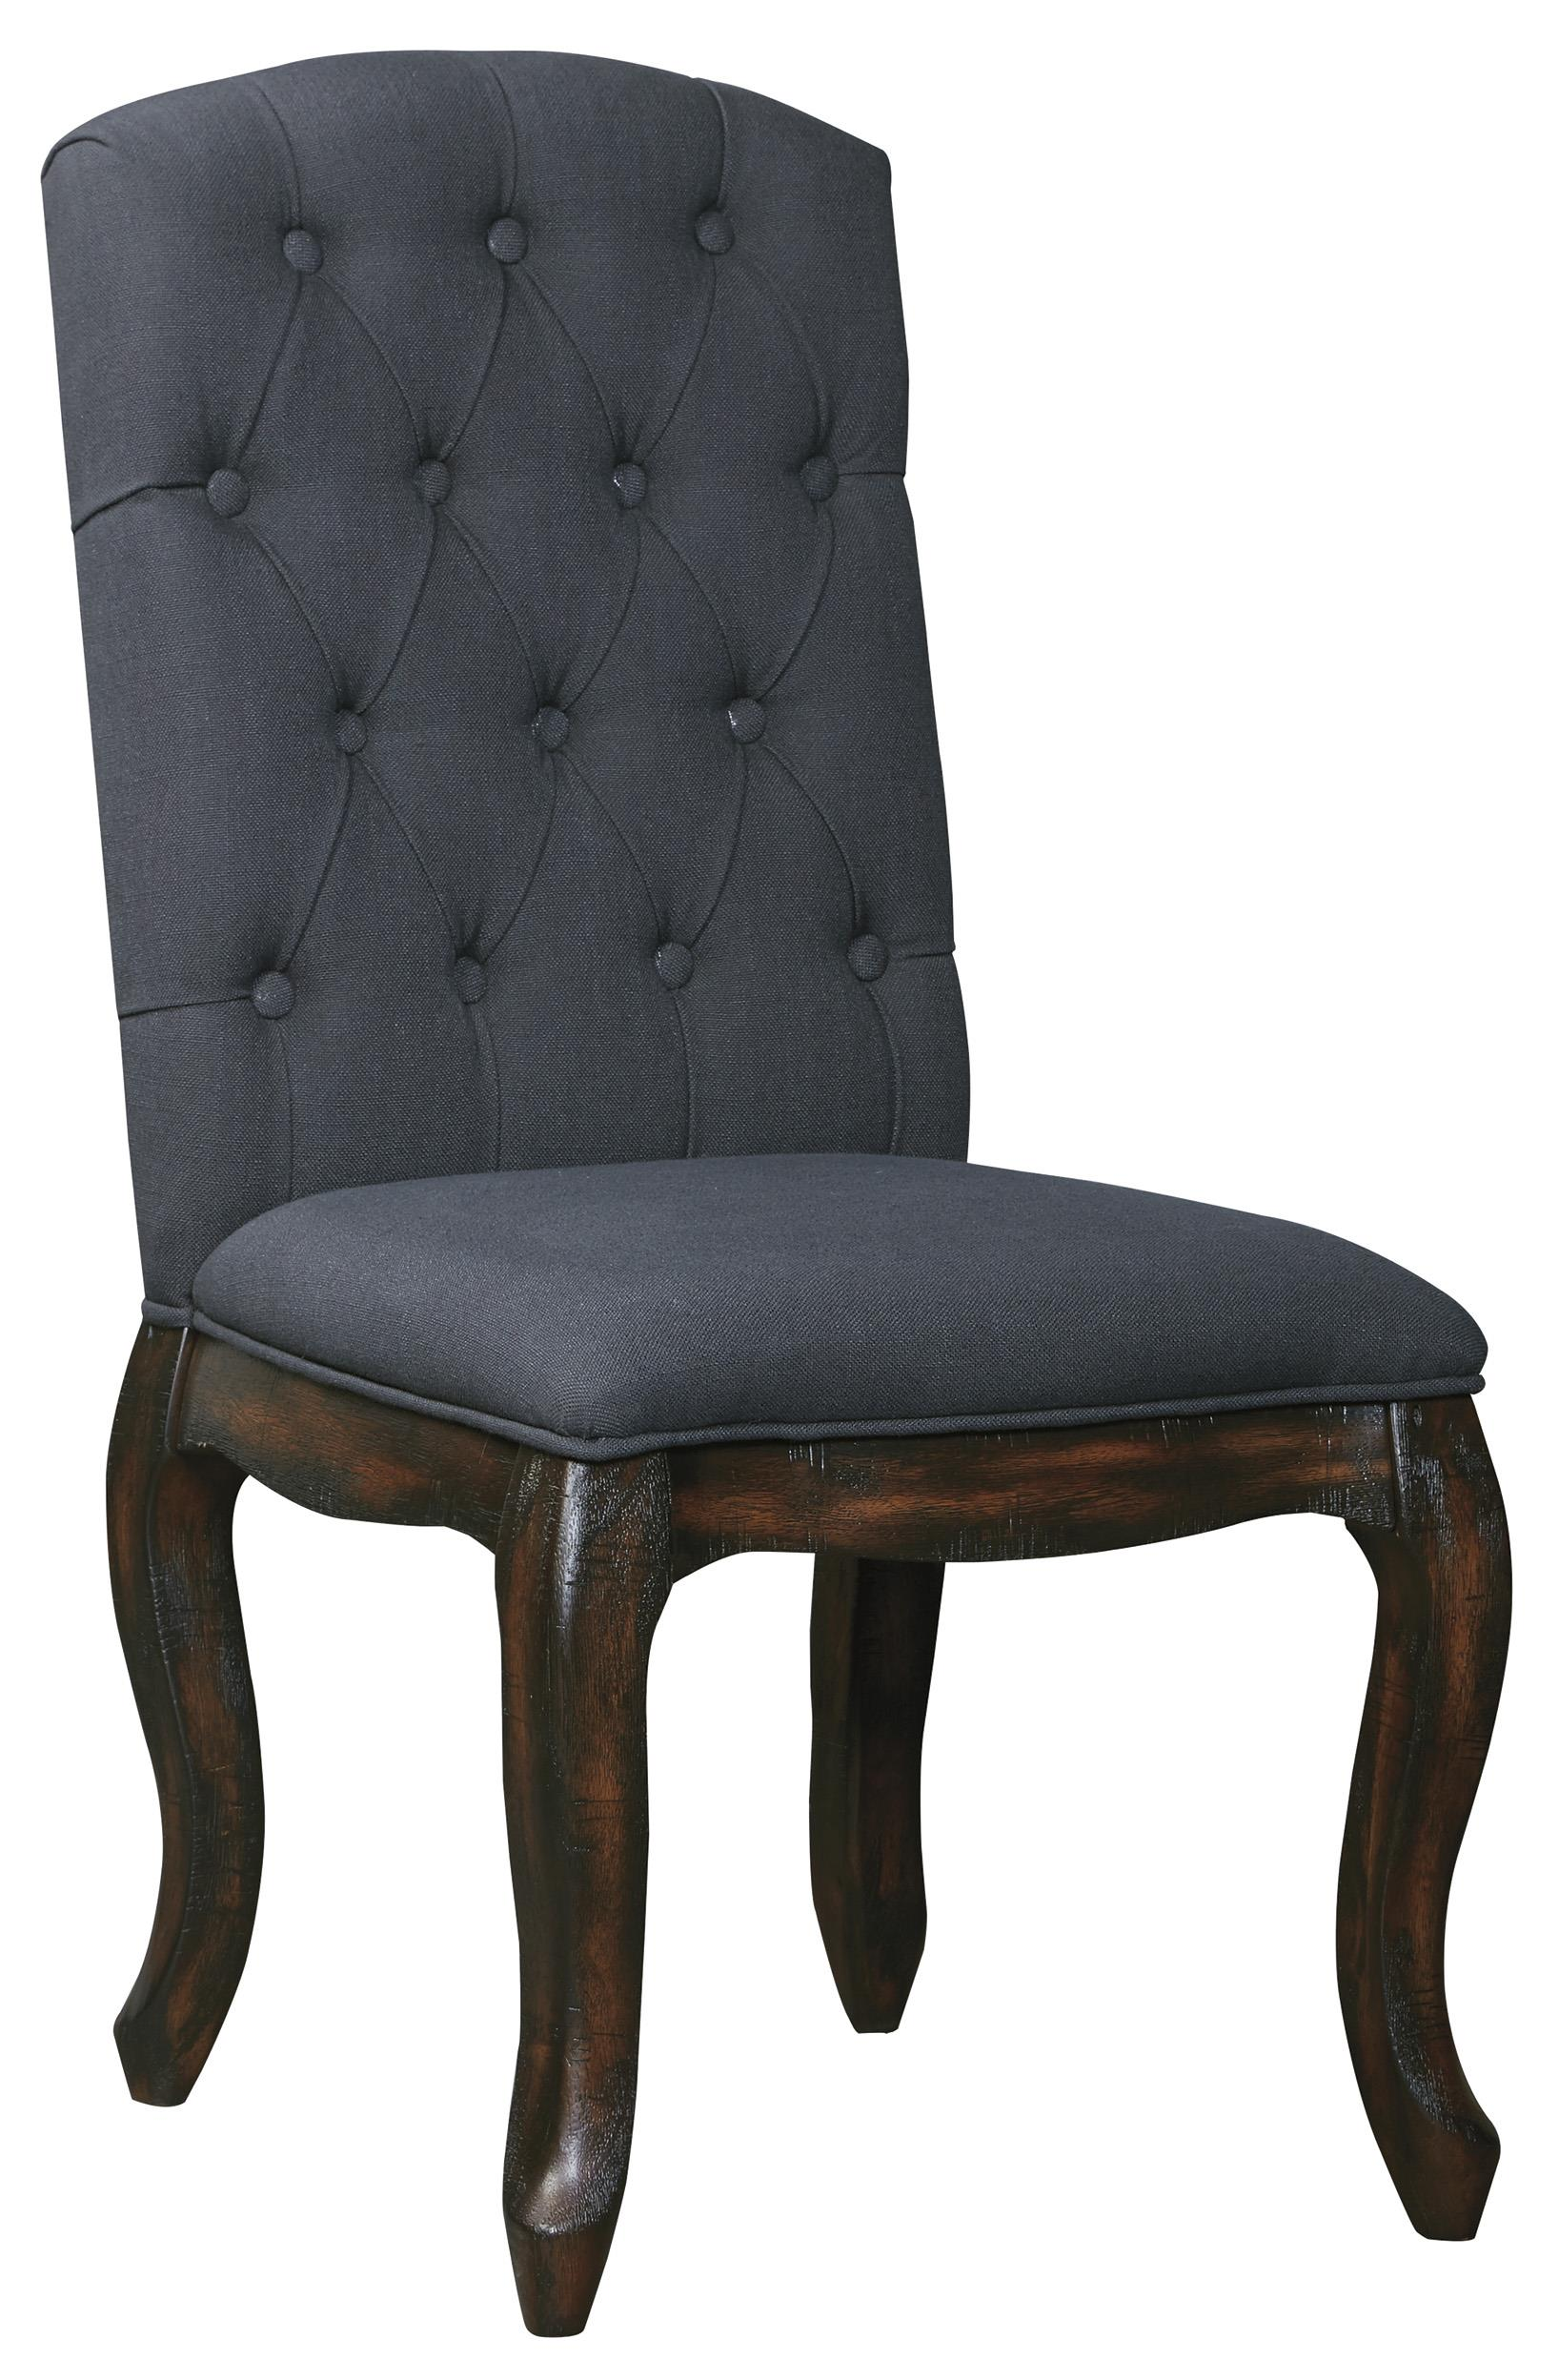 Upholstered Side Chairs Dining Upholstered Side Chair With Tufted Back And